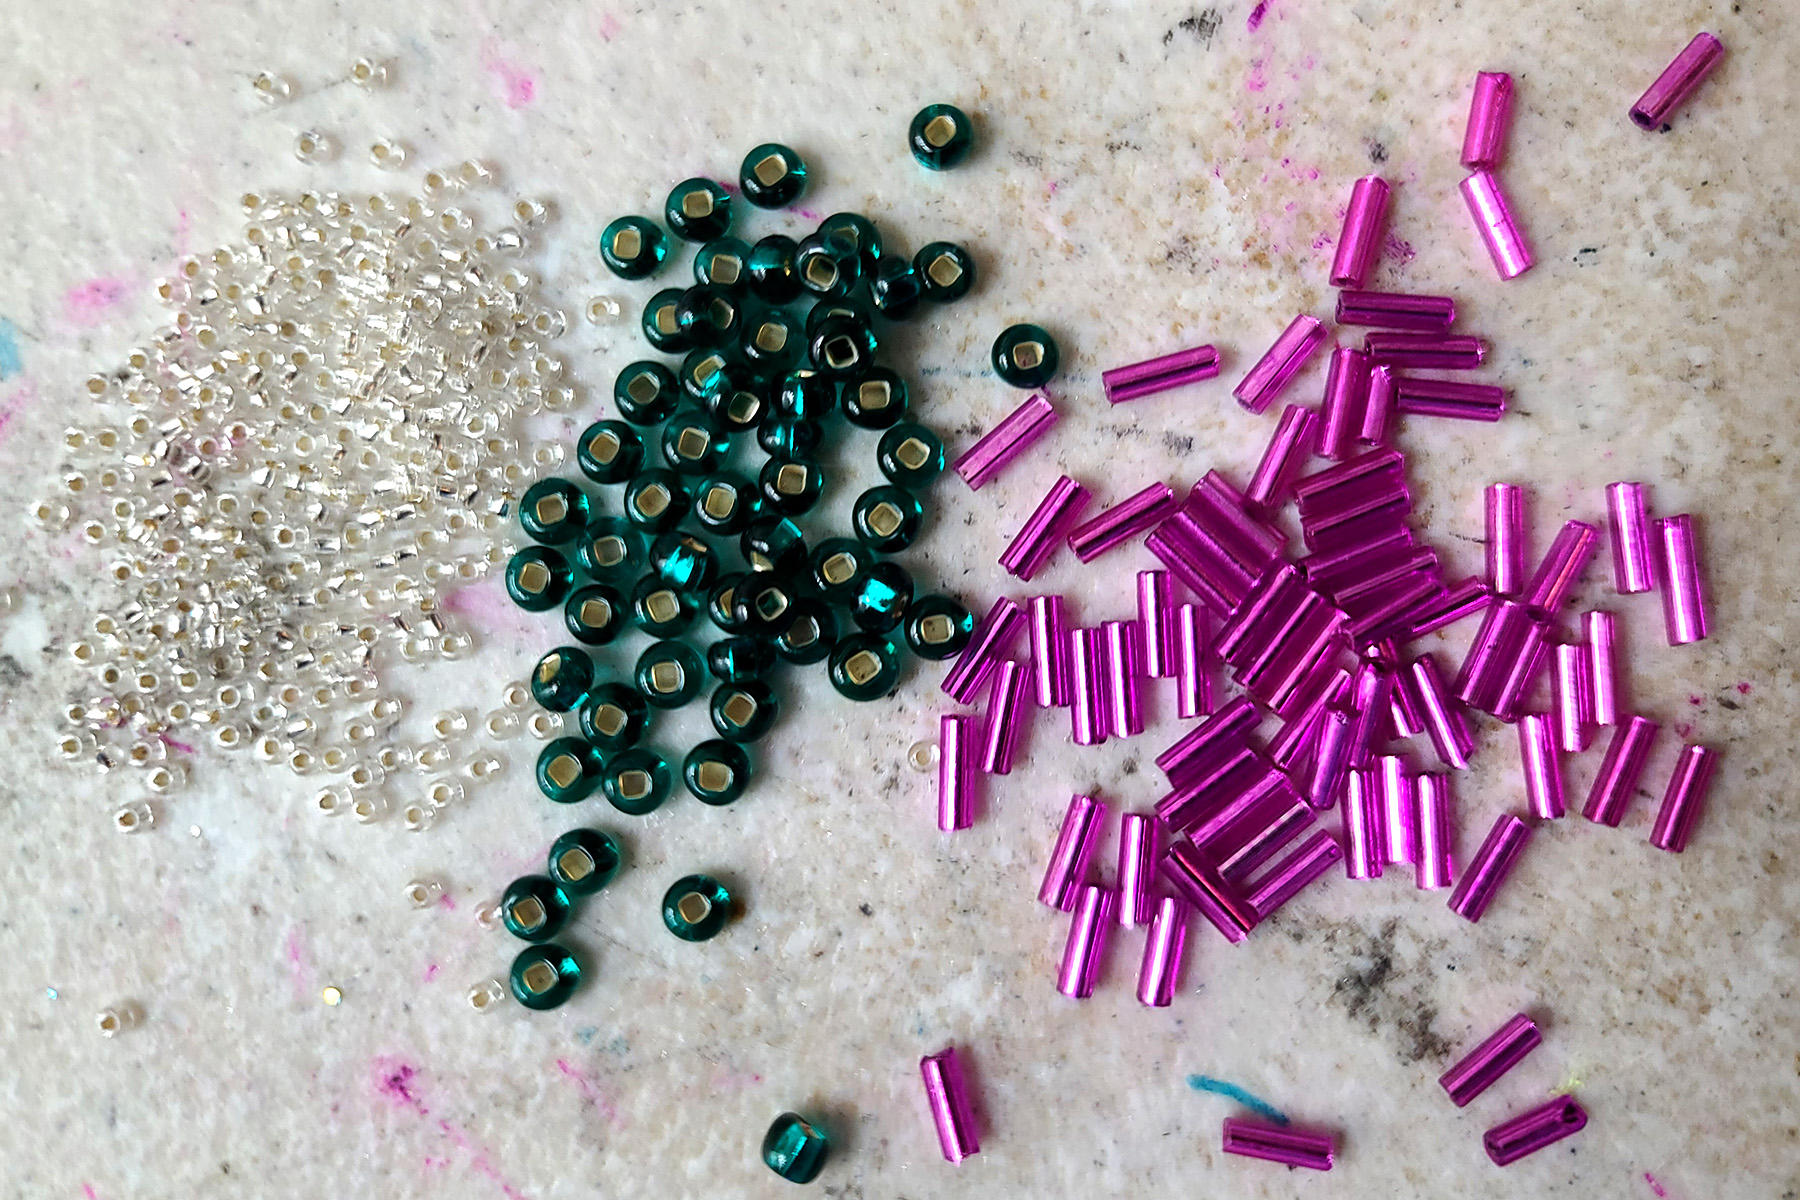 Clear seed beads, green rocaille beads, and dark pink bugle beads, on a grey work surface.